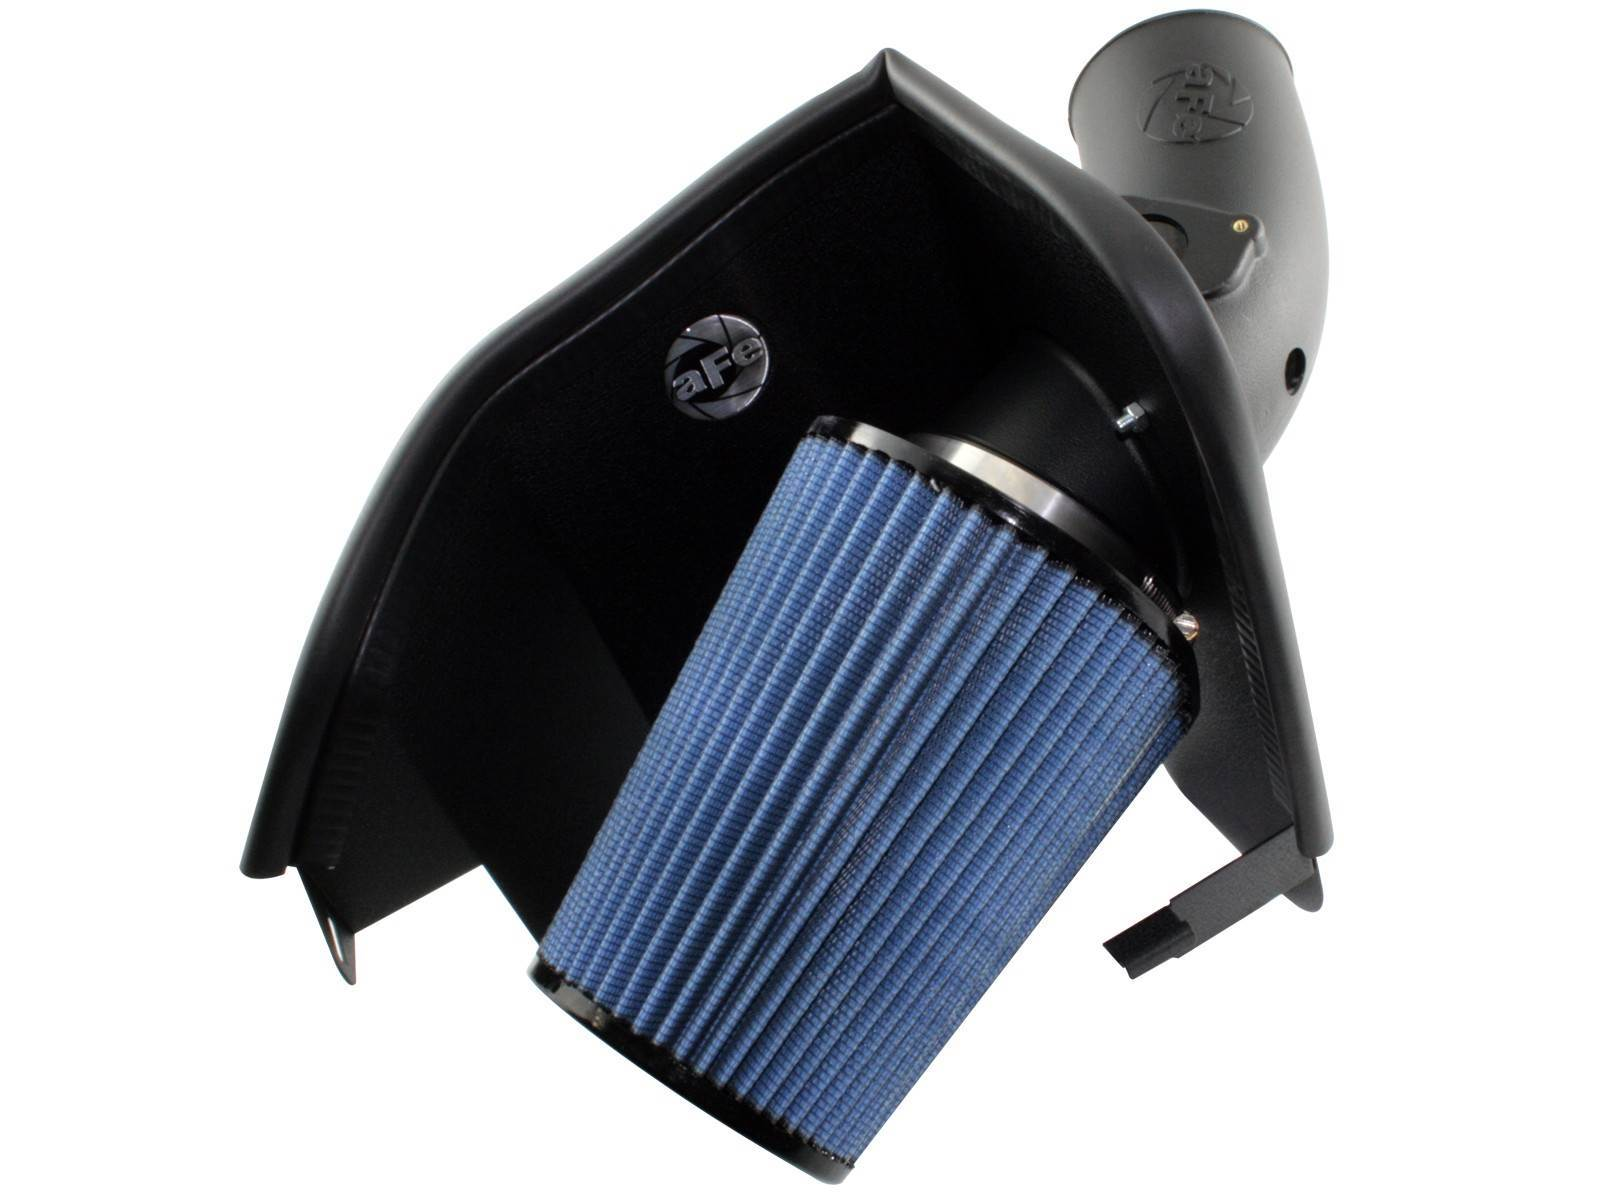 54-30392 - aFE Stage II Cold Air Intake System (Pro5R) for your 2003-2007 Ford Powerstroke 6.0L turbo diesel.